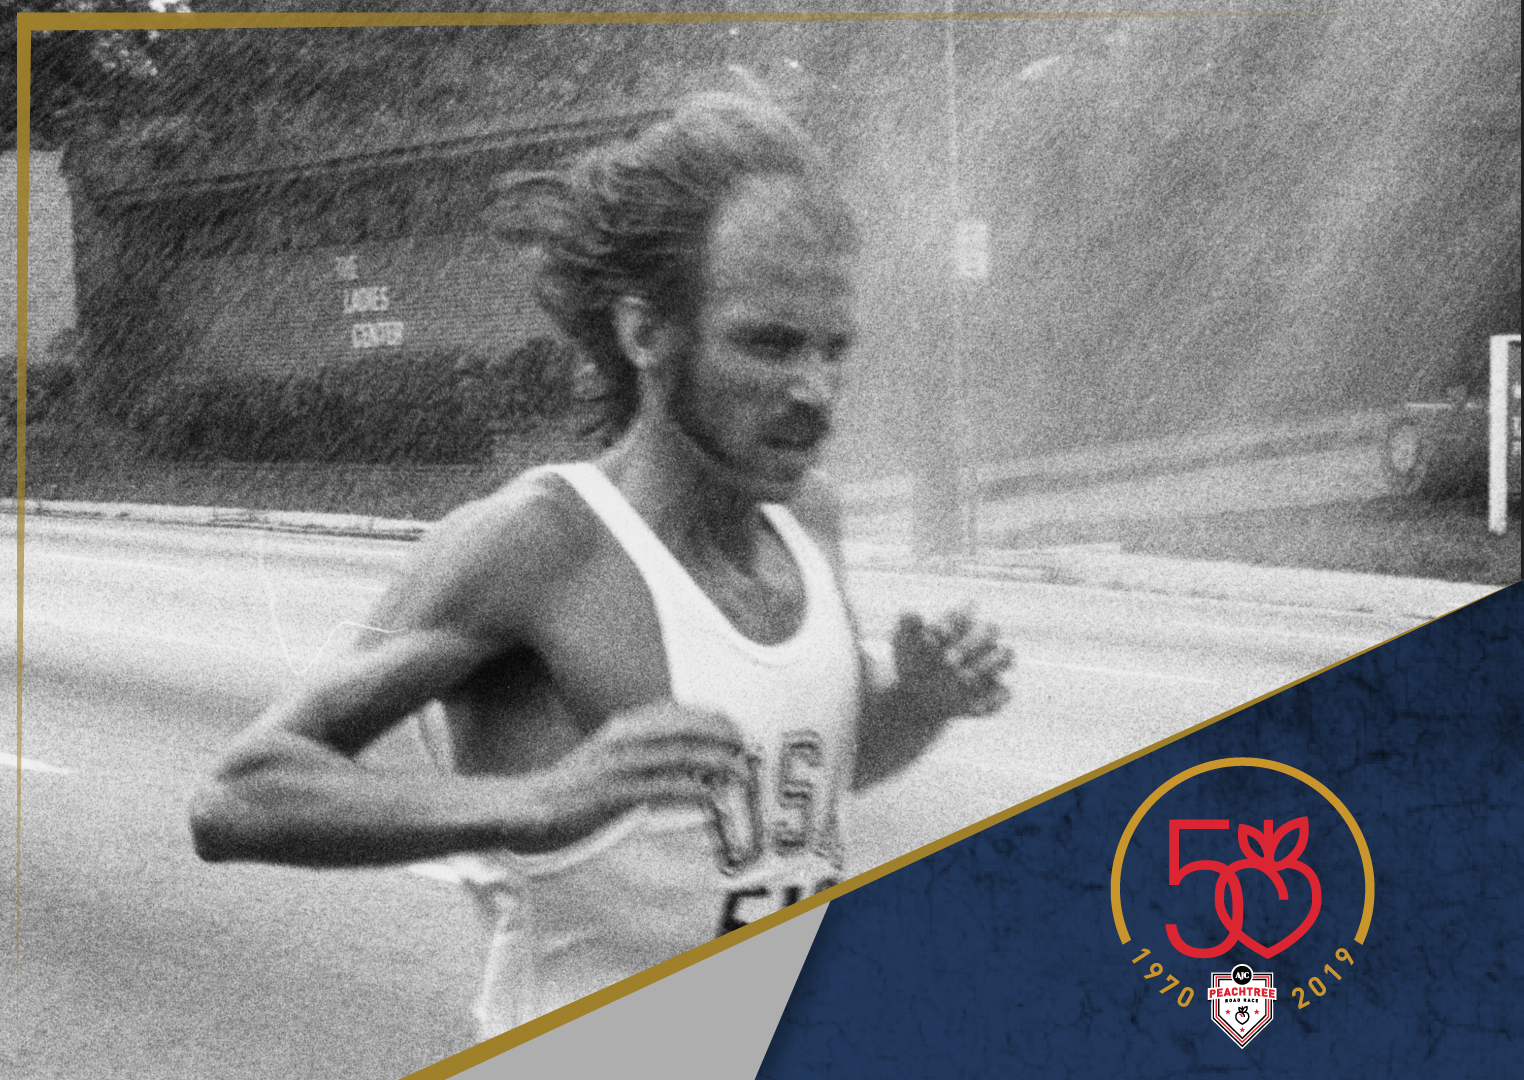 Galloway's Methods at the Peachtree - By Amby BurfootThe first man across the line at the 1970 edition of the Peachtree was a man now well-known across the world: Jeff Galloway.